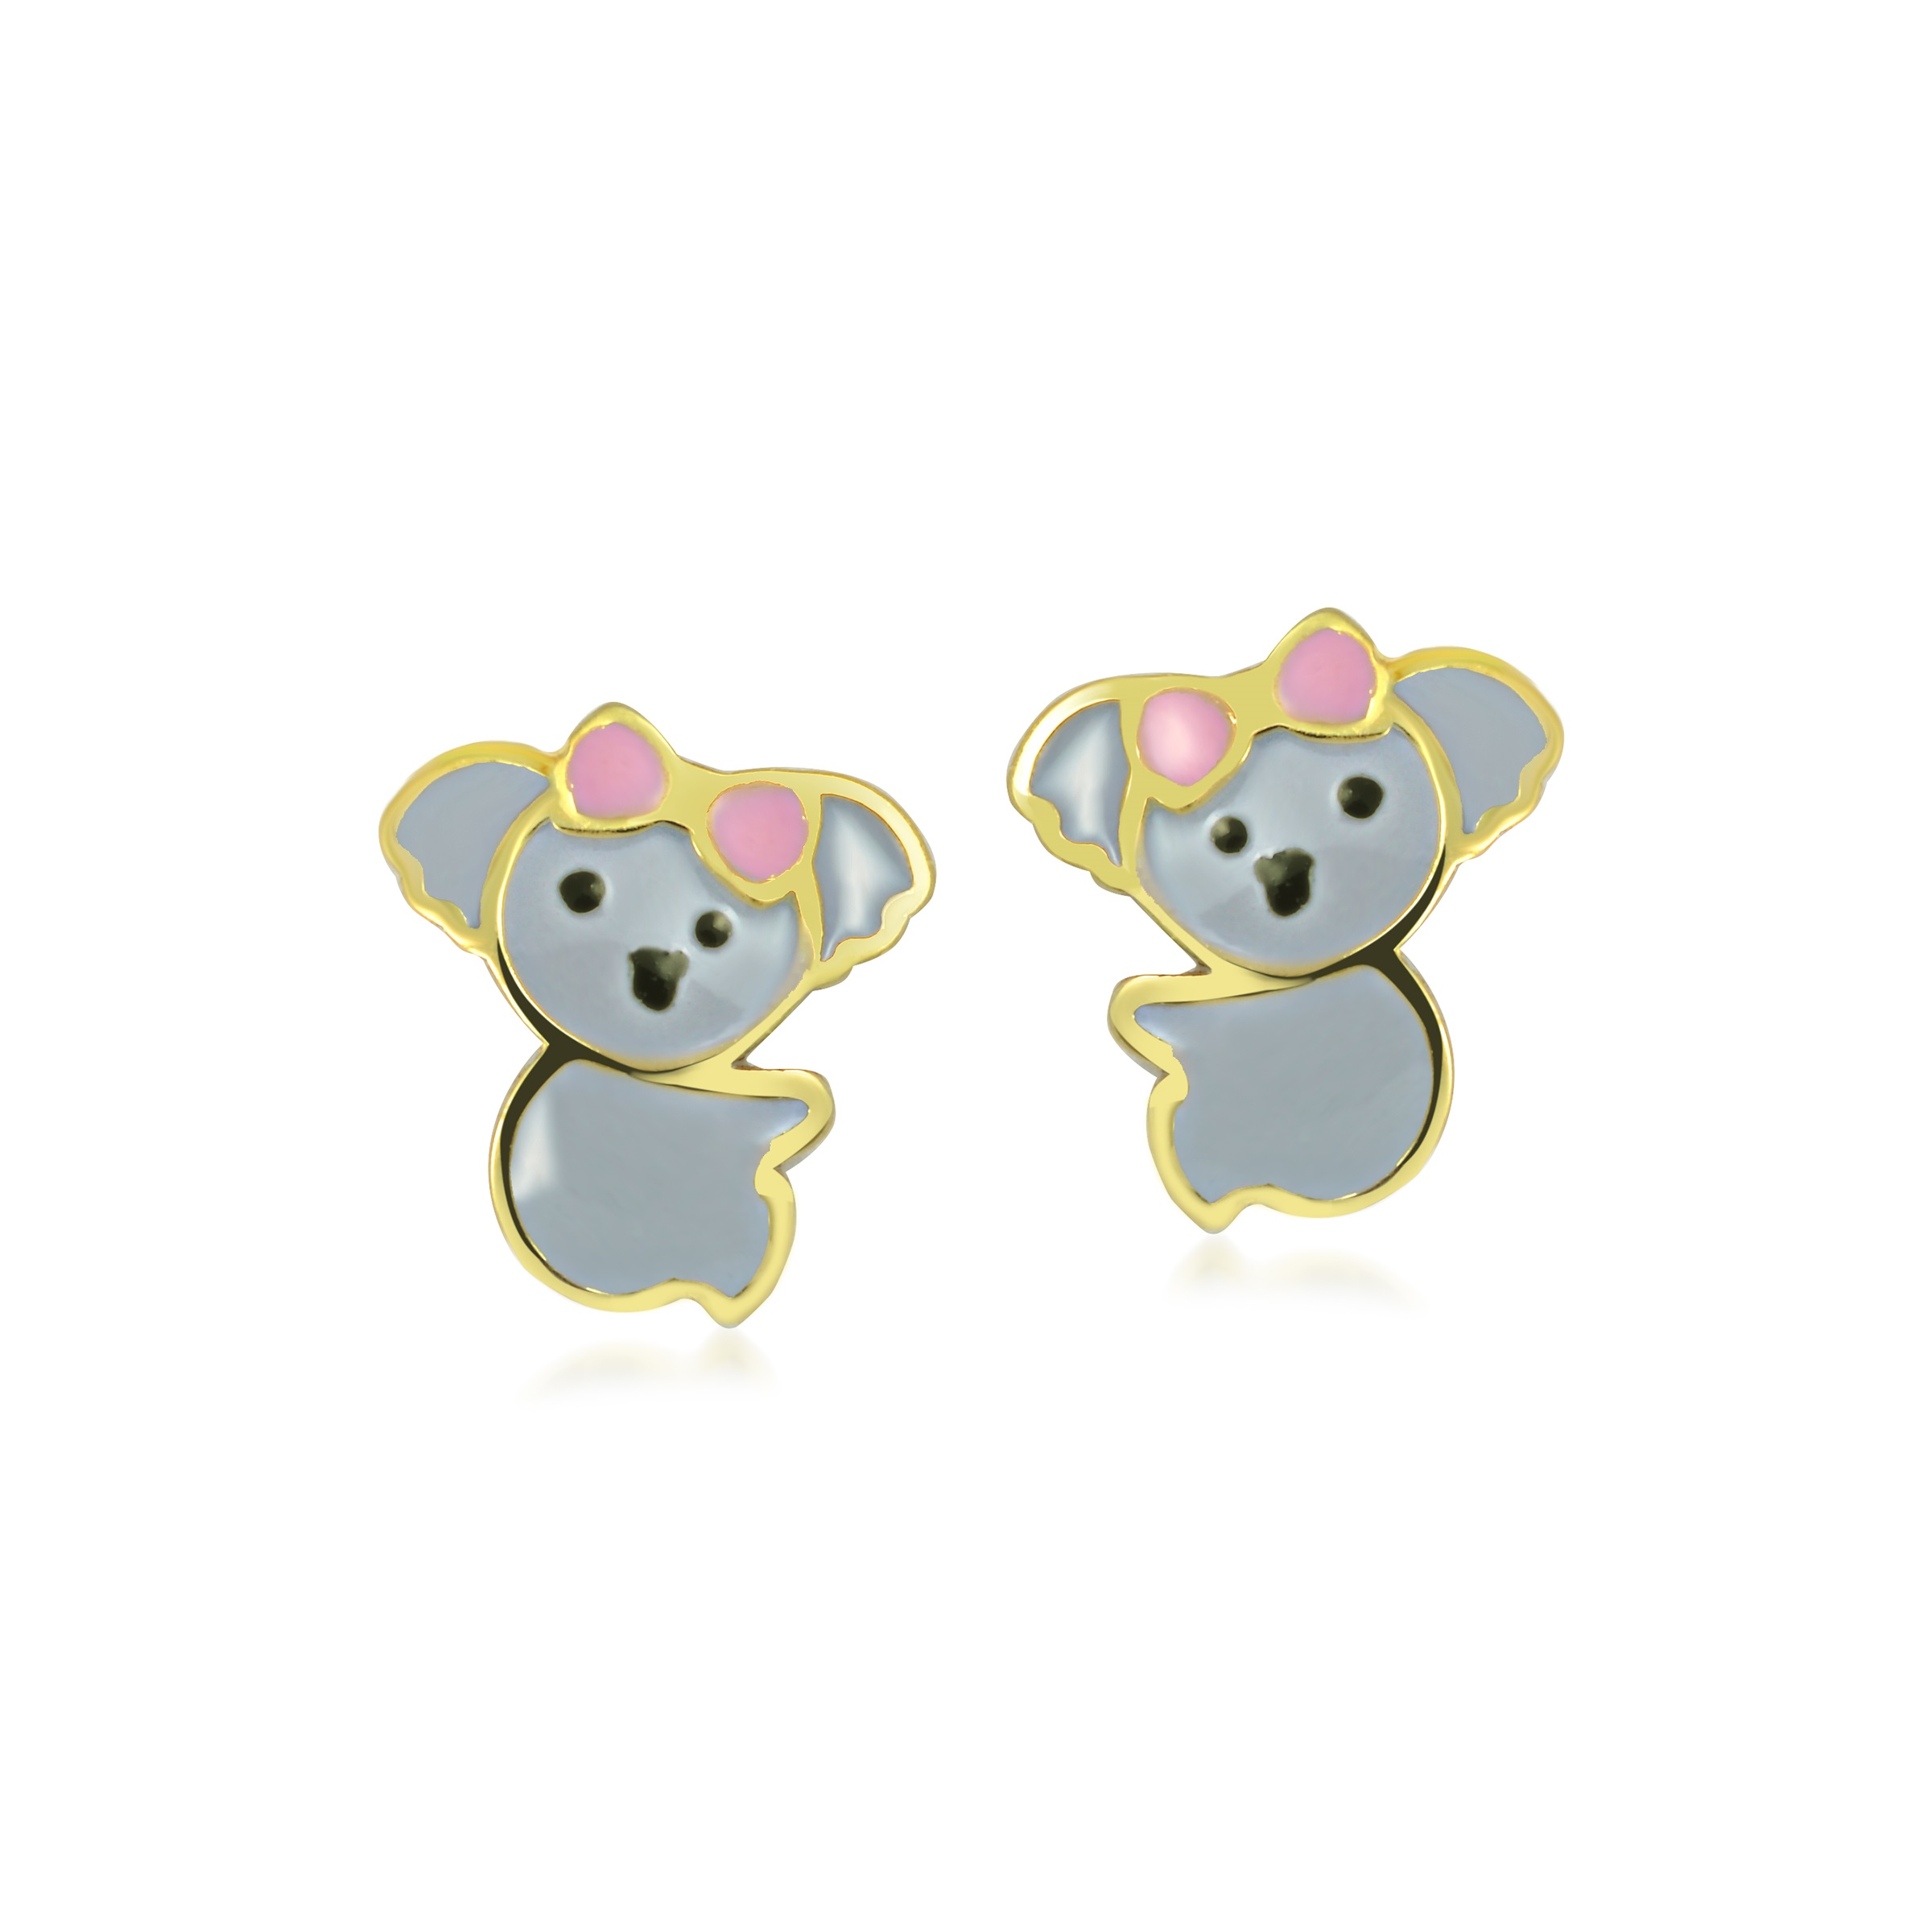 Koala earrings with enamel - 10K yellow Gold